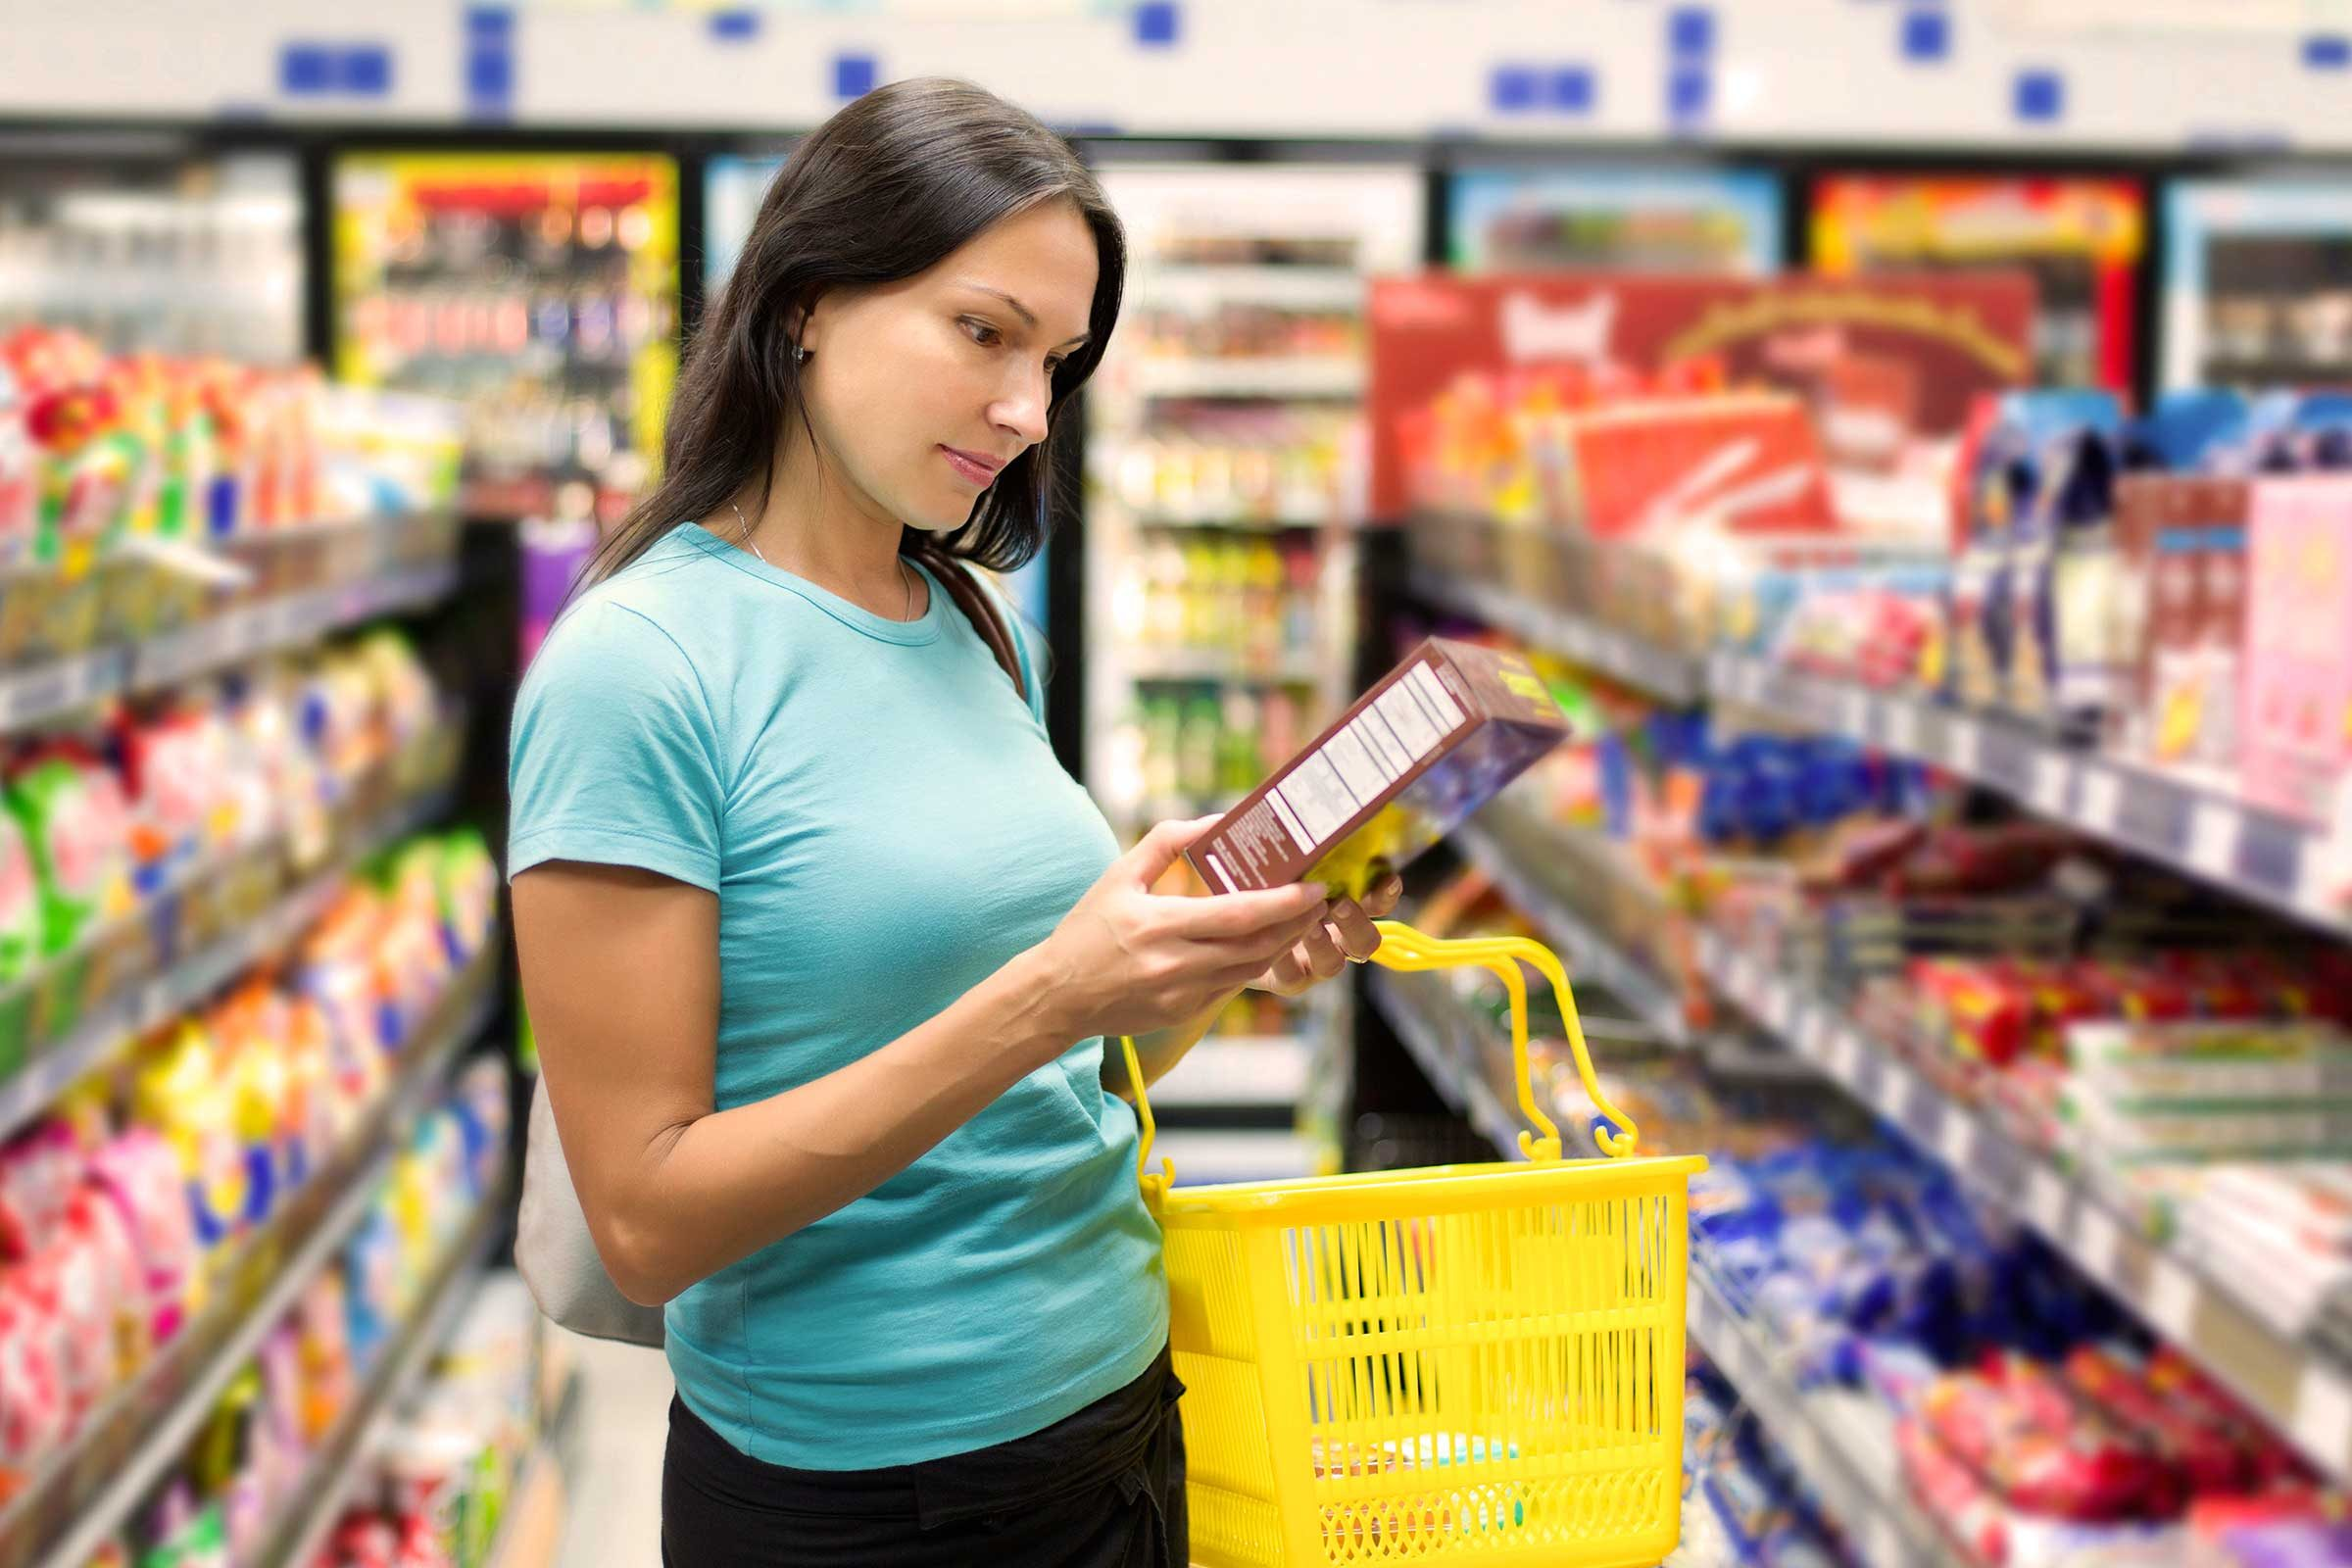 woman shopping, looking at nutrition label